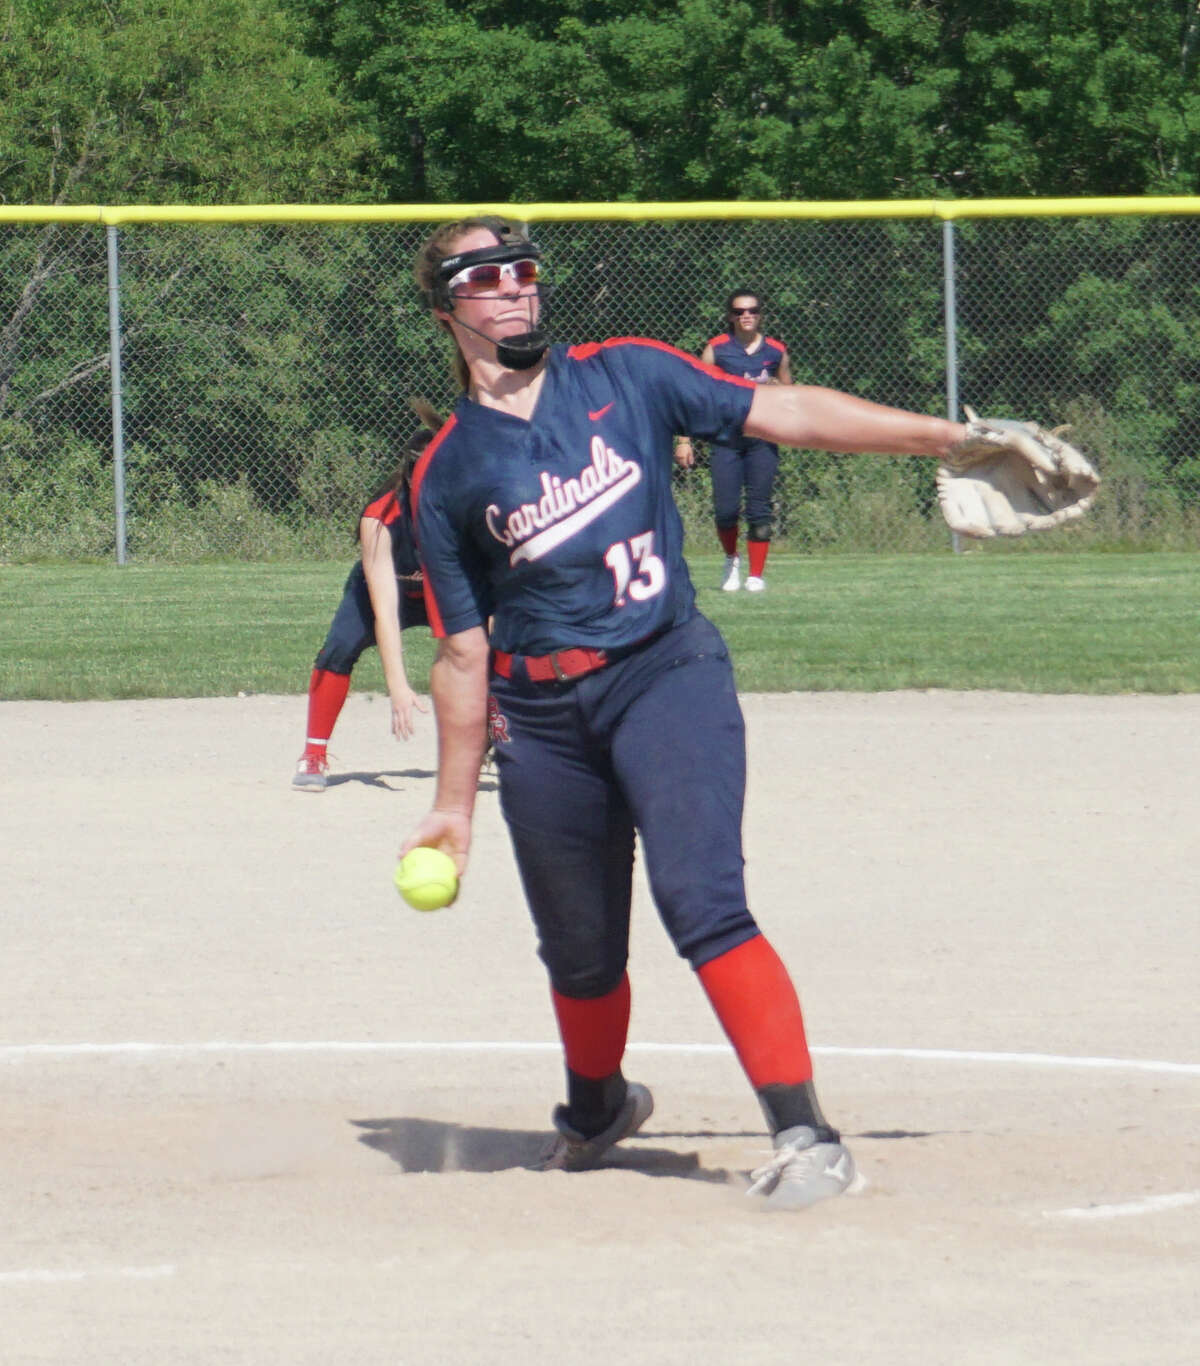 The Big Rapids softball team was defeated 8-2 by Traverse City West on Wednesday afternoon.